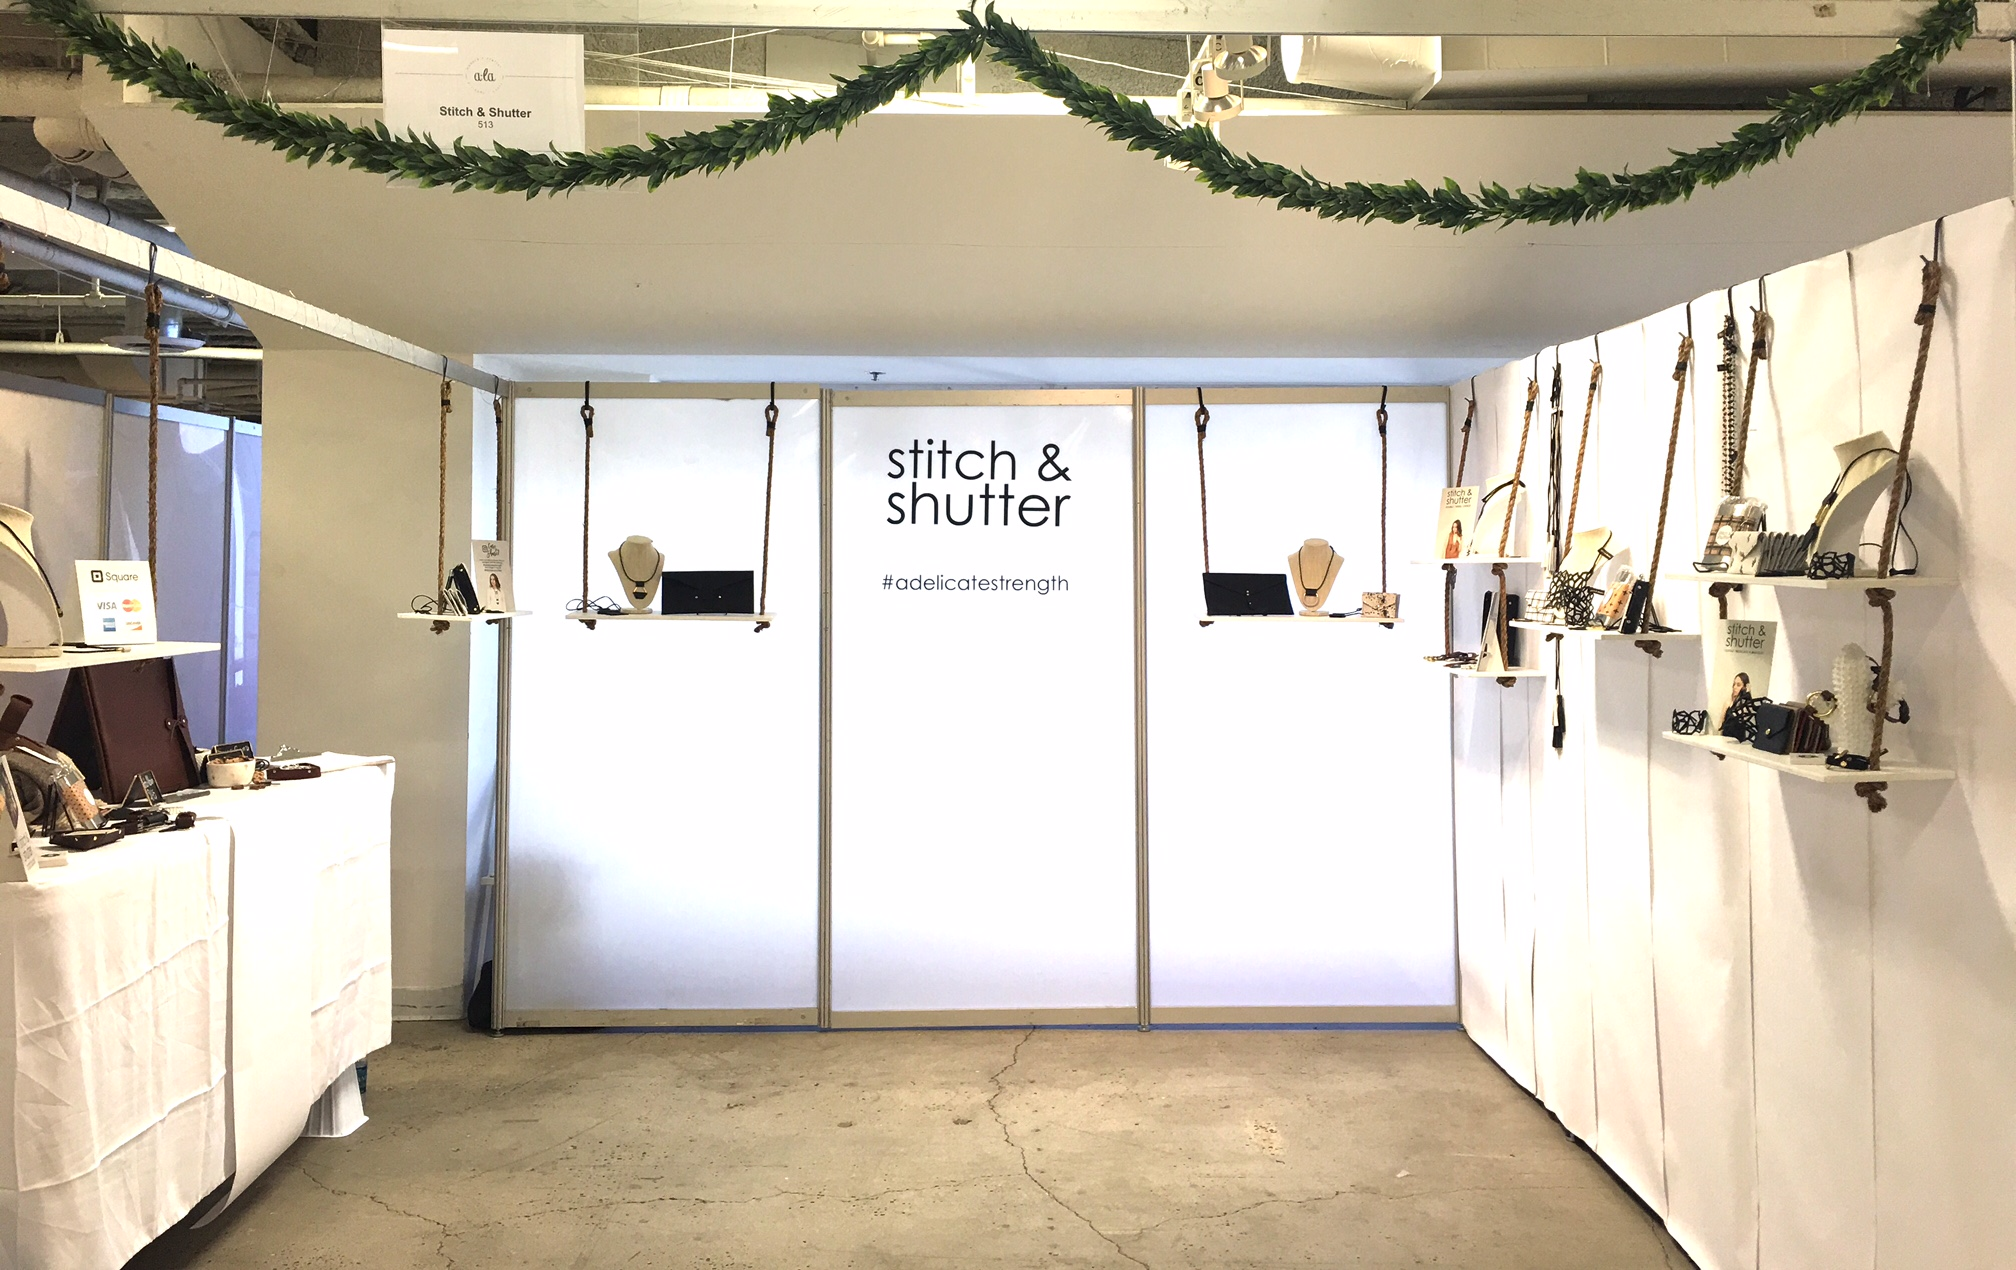 The Stitch & Shutter Leather Goods booth at Artisanal LA- April 1 & 2, 2017 in DTLA. This was an all new set up, perfect for a fresh spring take with greenery and swing-inspired rope shelves.